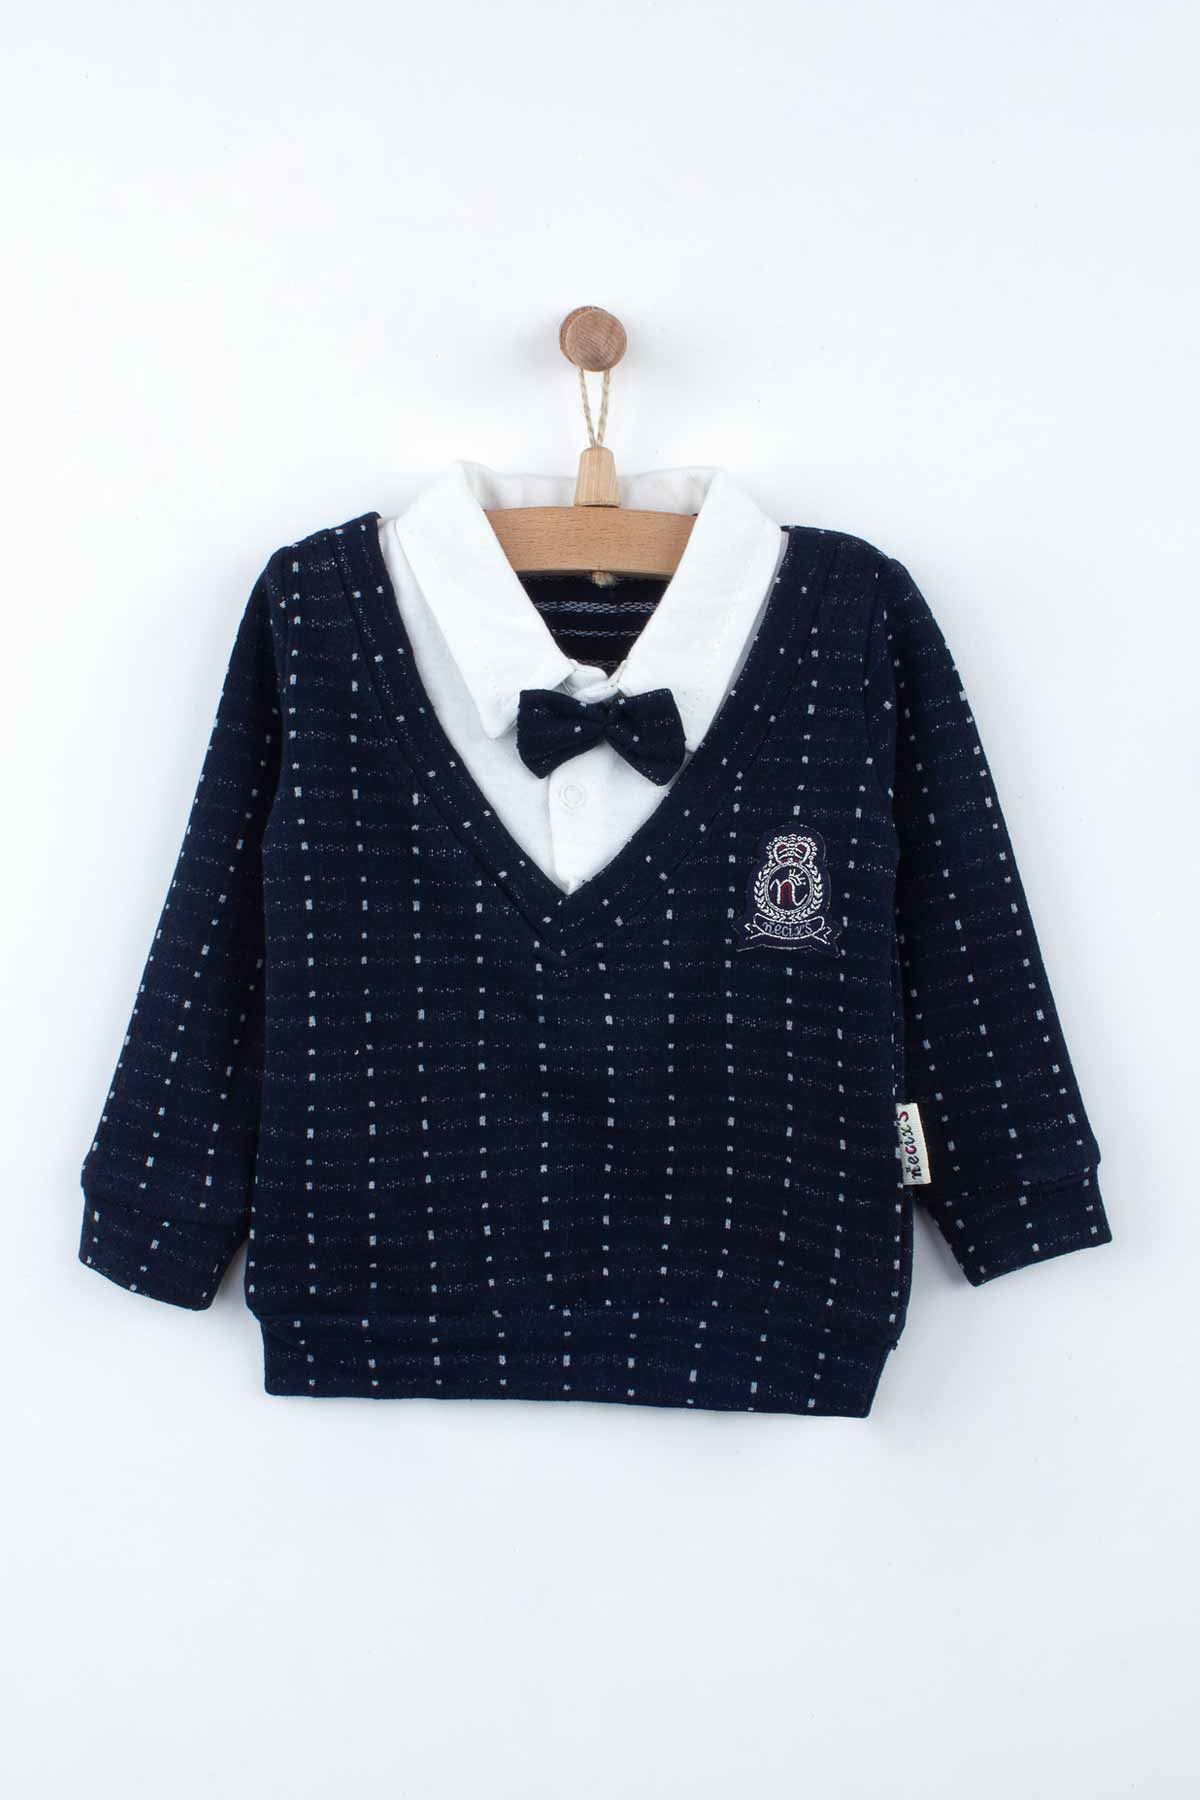 Navy Blue Baby Boys Gentleman Sweater Bottom Set 2 Piece Set Season Fashion Babies Bow Tie Cotton Casual Wear Outfit dolls Model